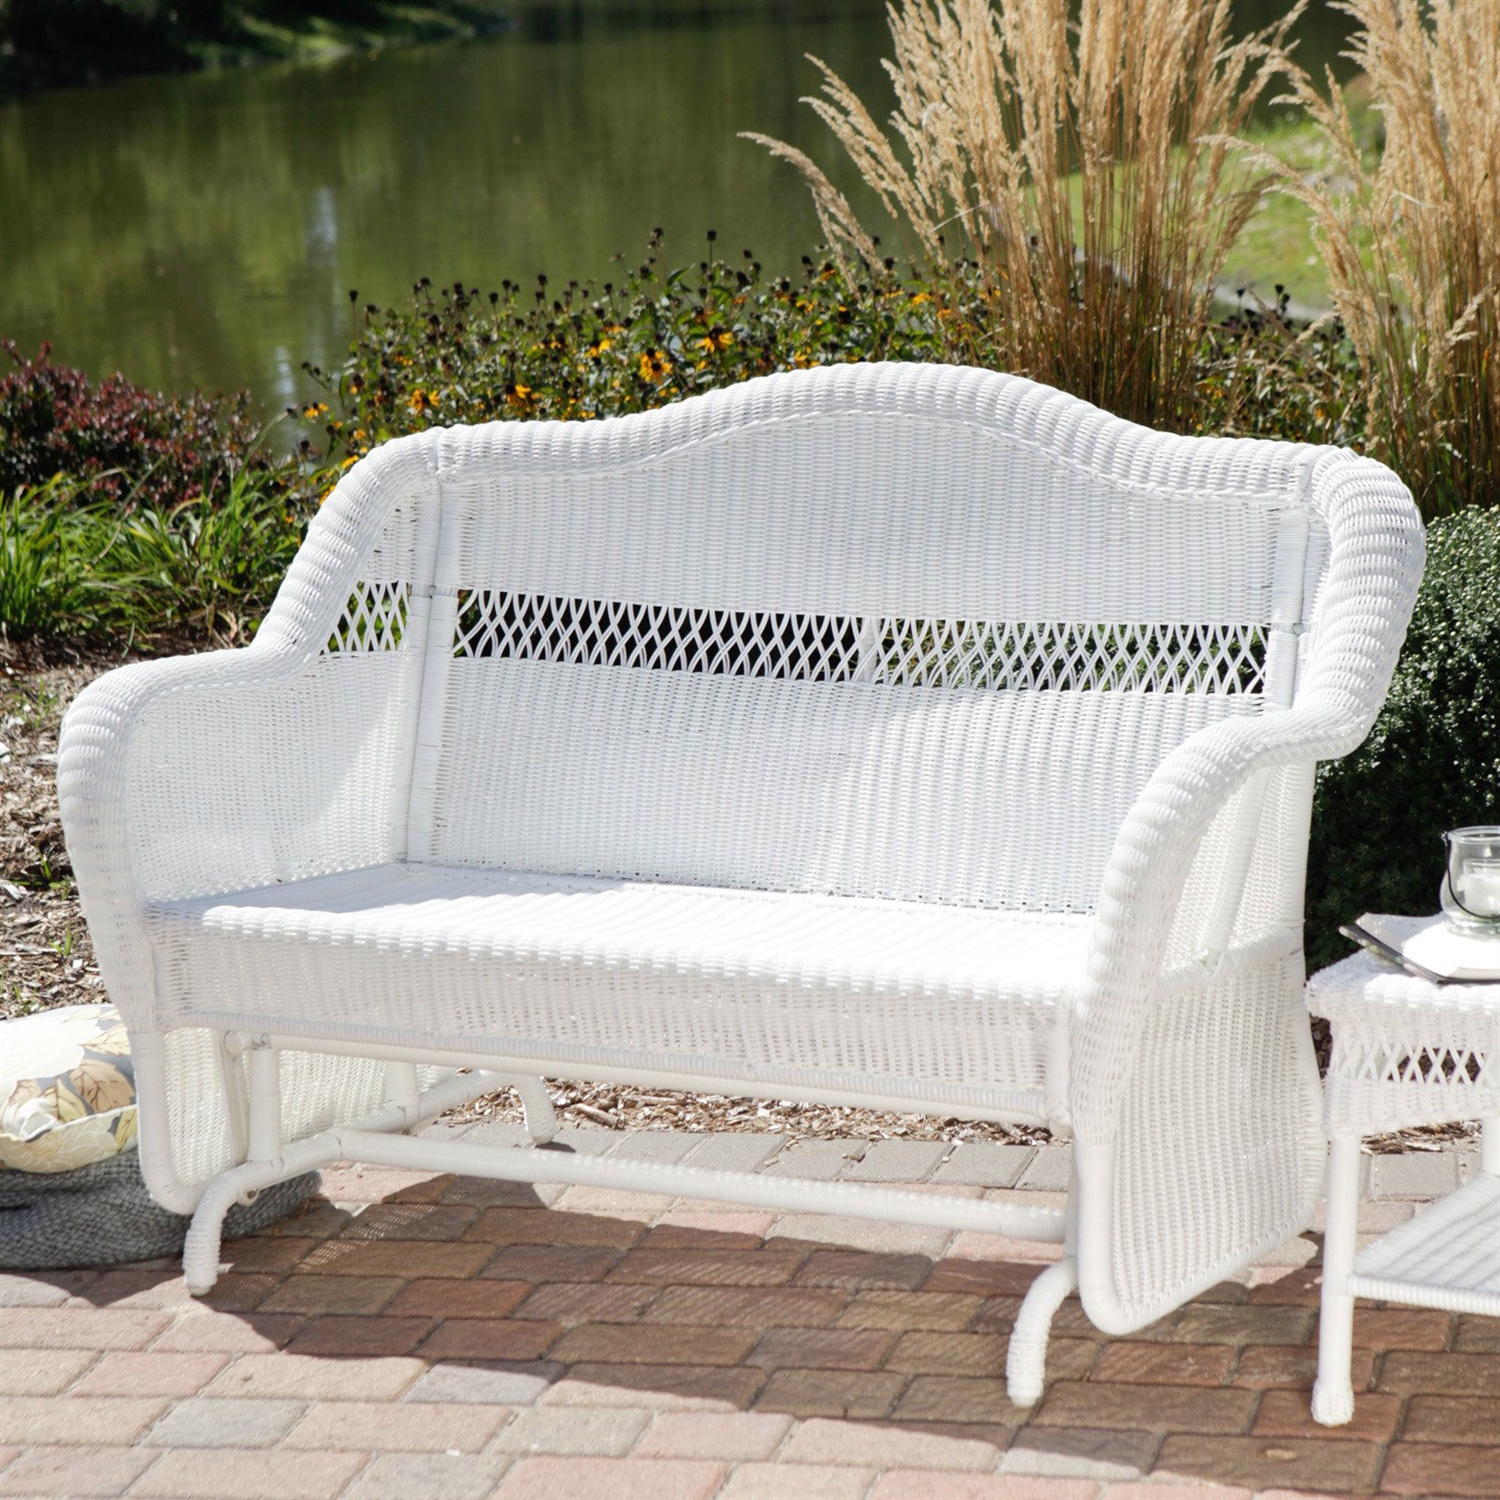 white resin wicker sofa oversized leather sofas outdoor 2 seat loveseat glider bench